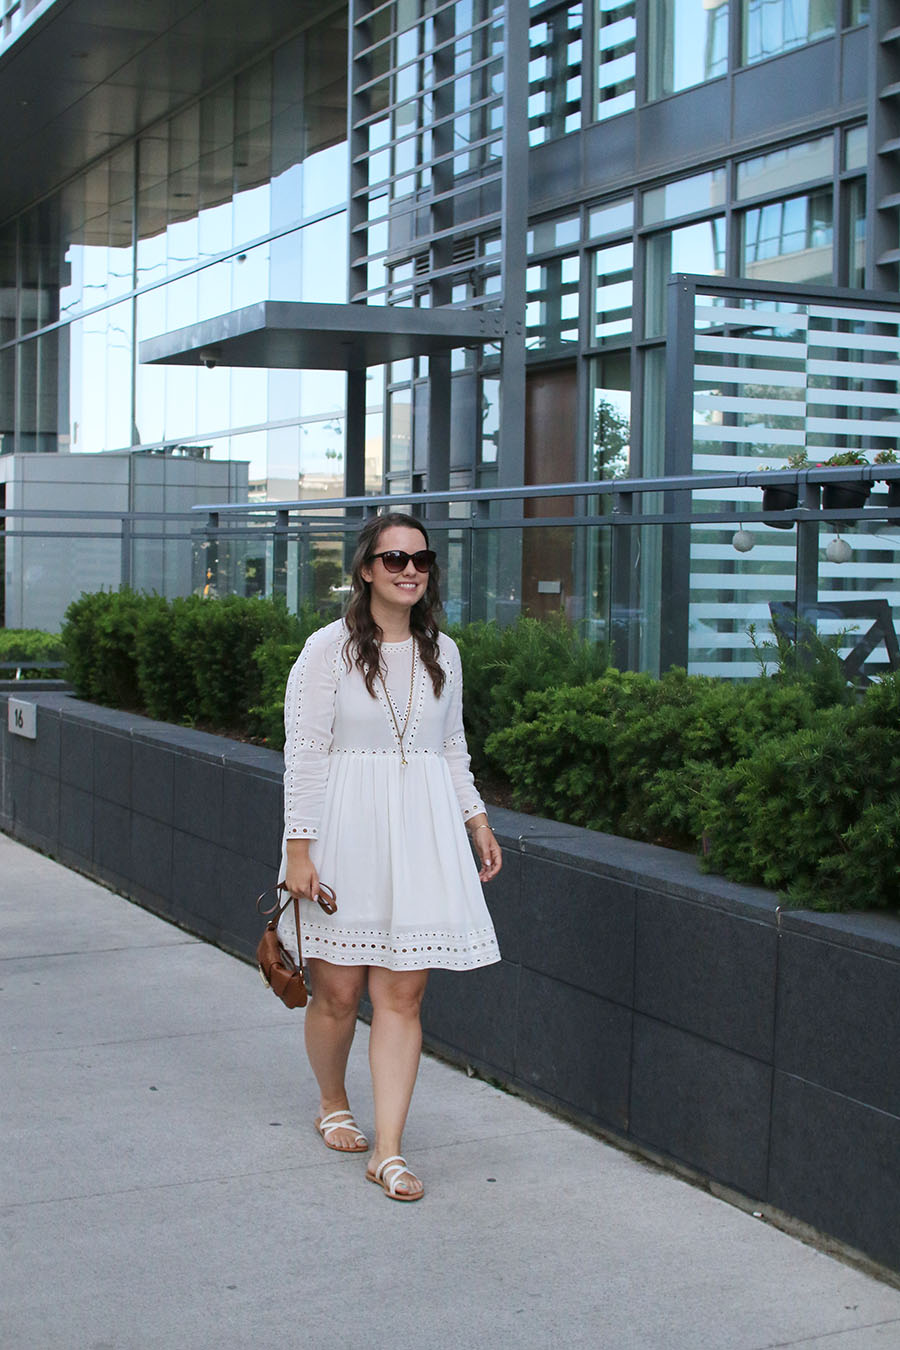 dress-with-long-sleeves-summer-outfit-ideas